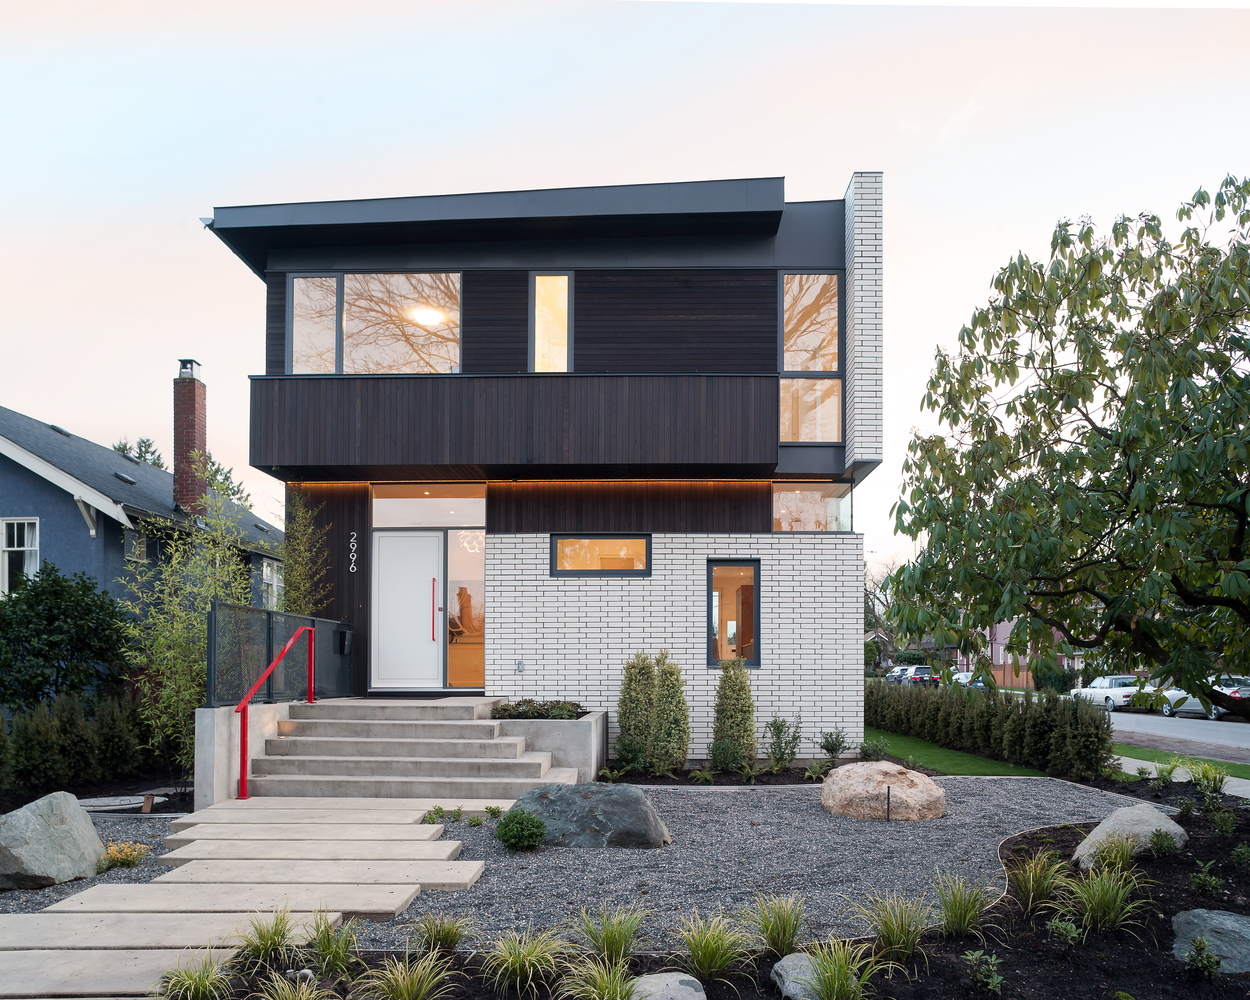 West 11th Residence By Randy Bens Architect In Vancouver